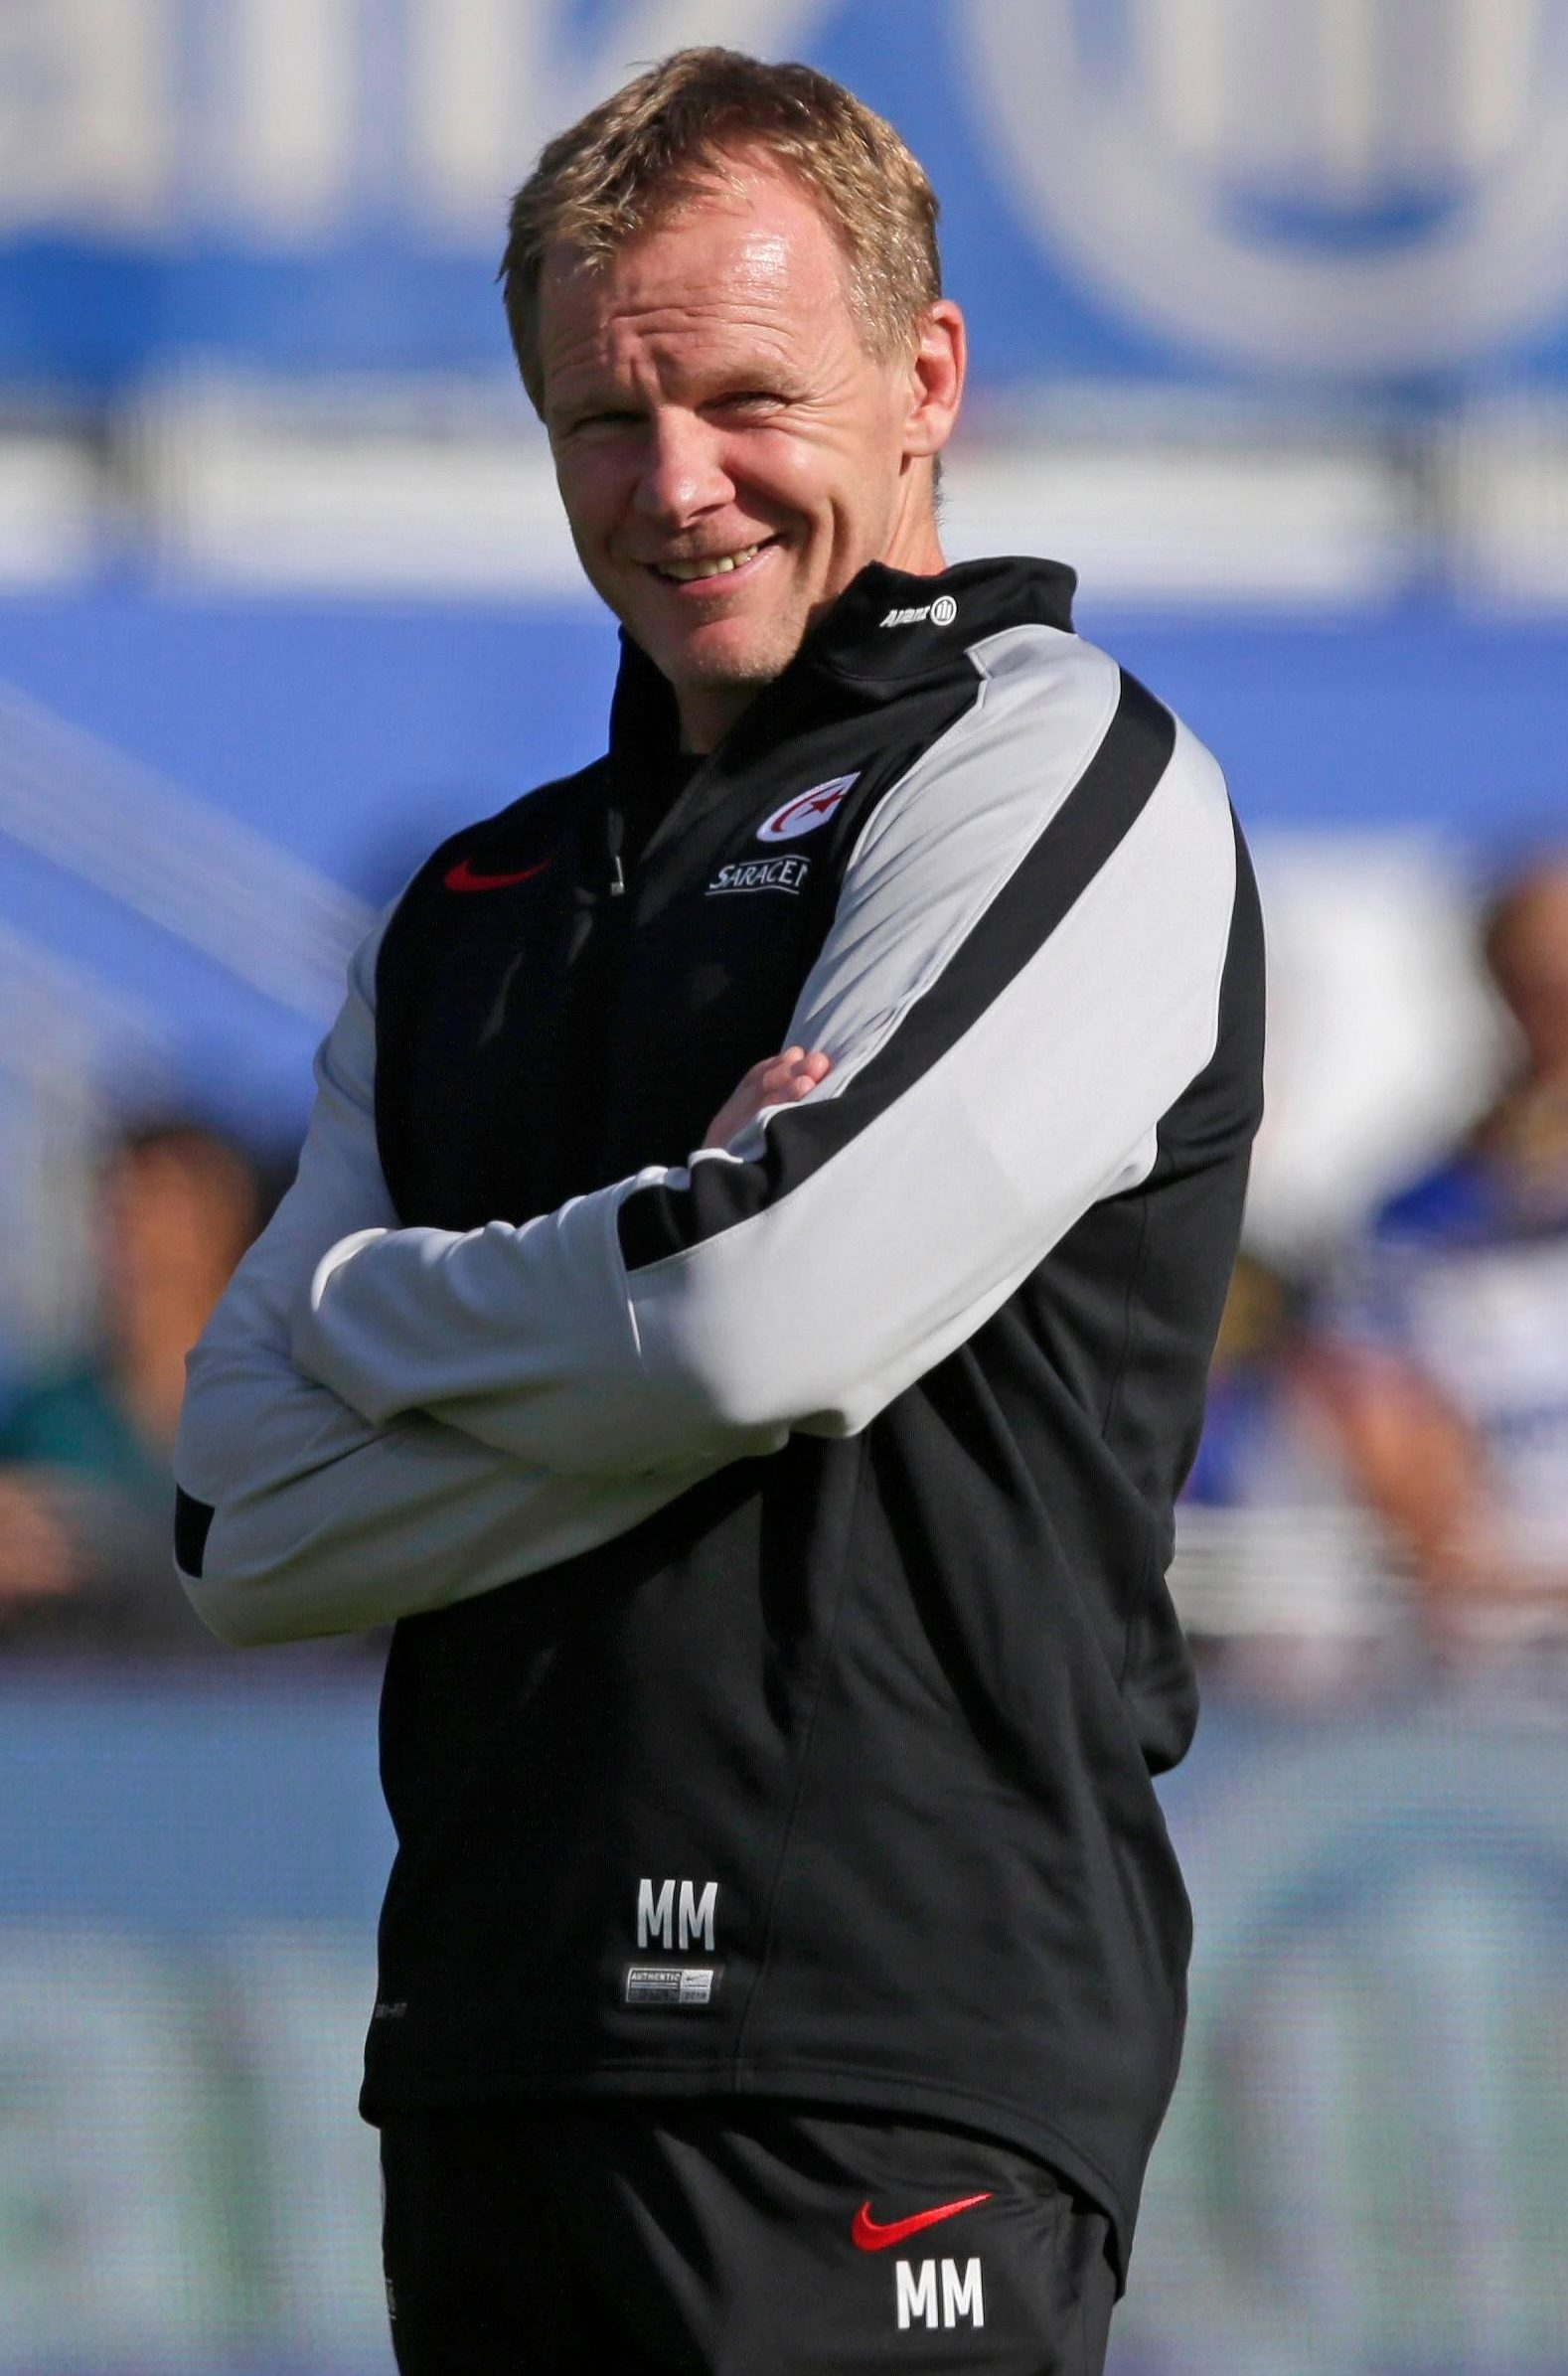 Saracens boss Mark McCall is raring to go in the Champions Cup